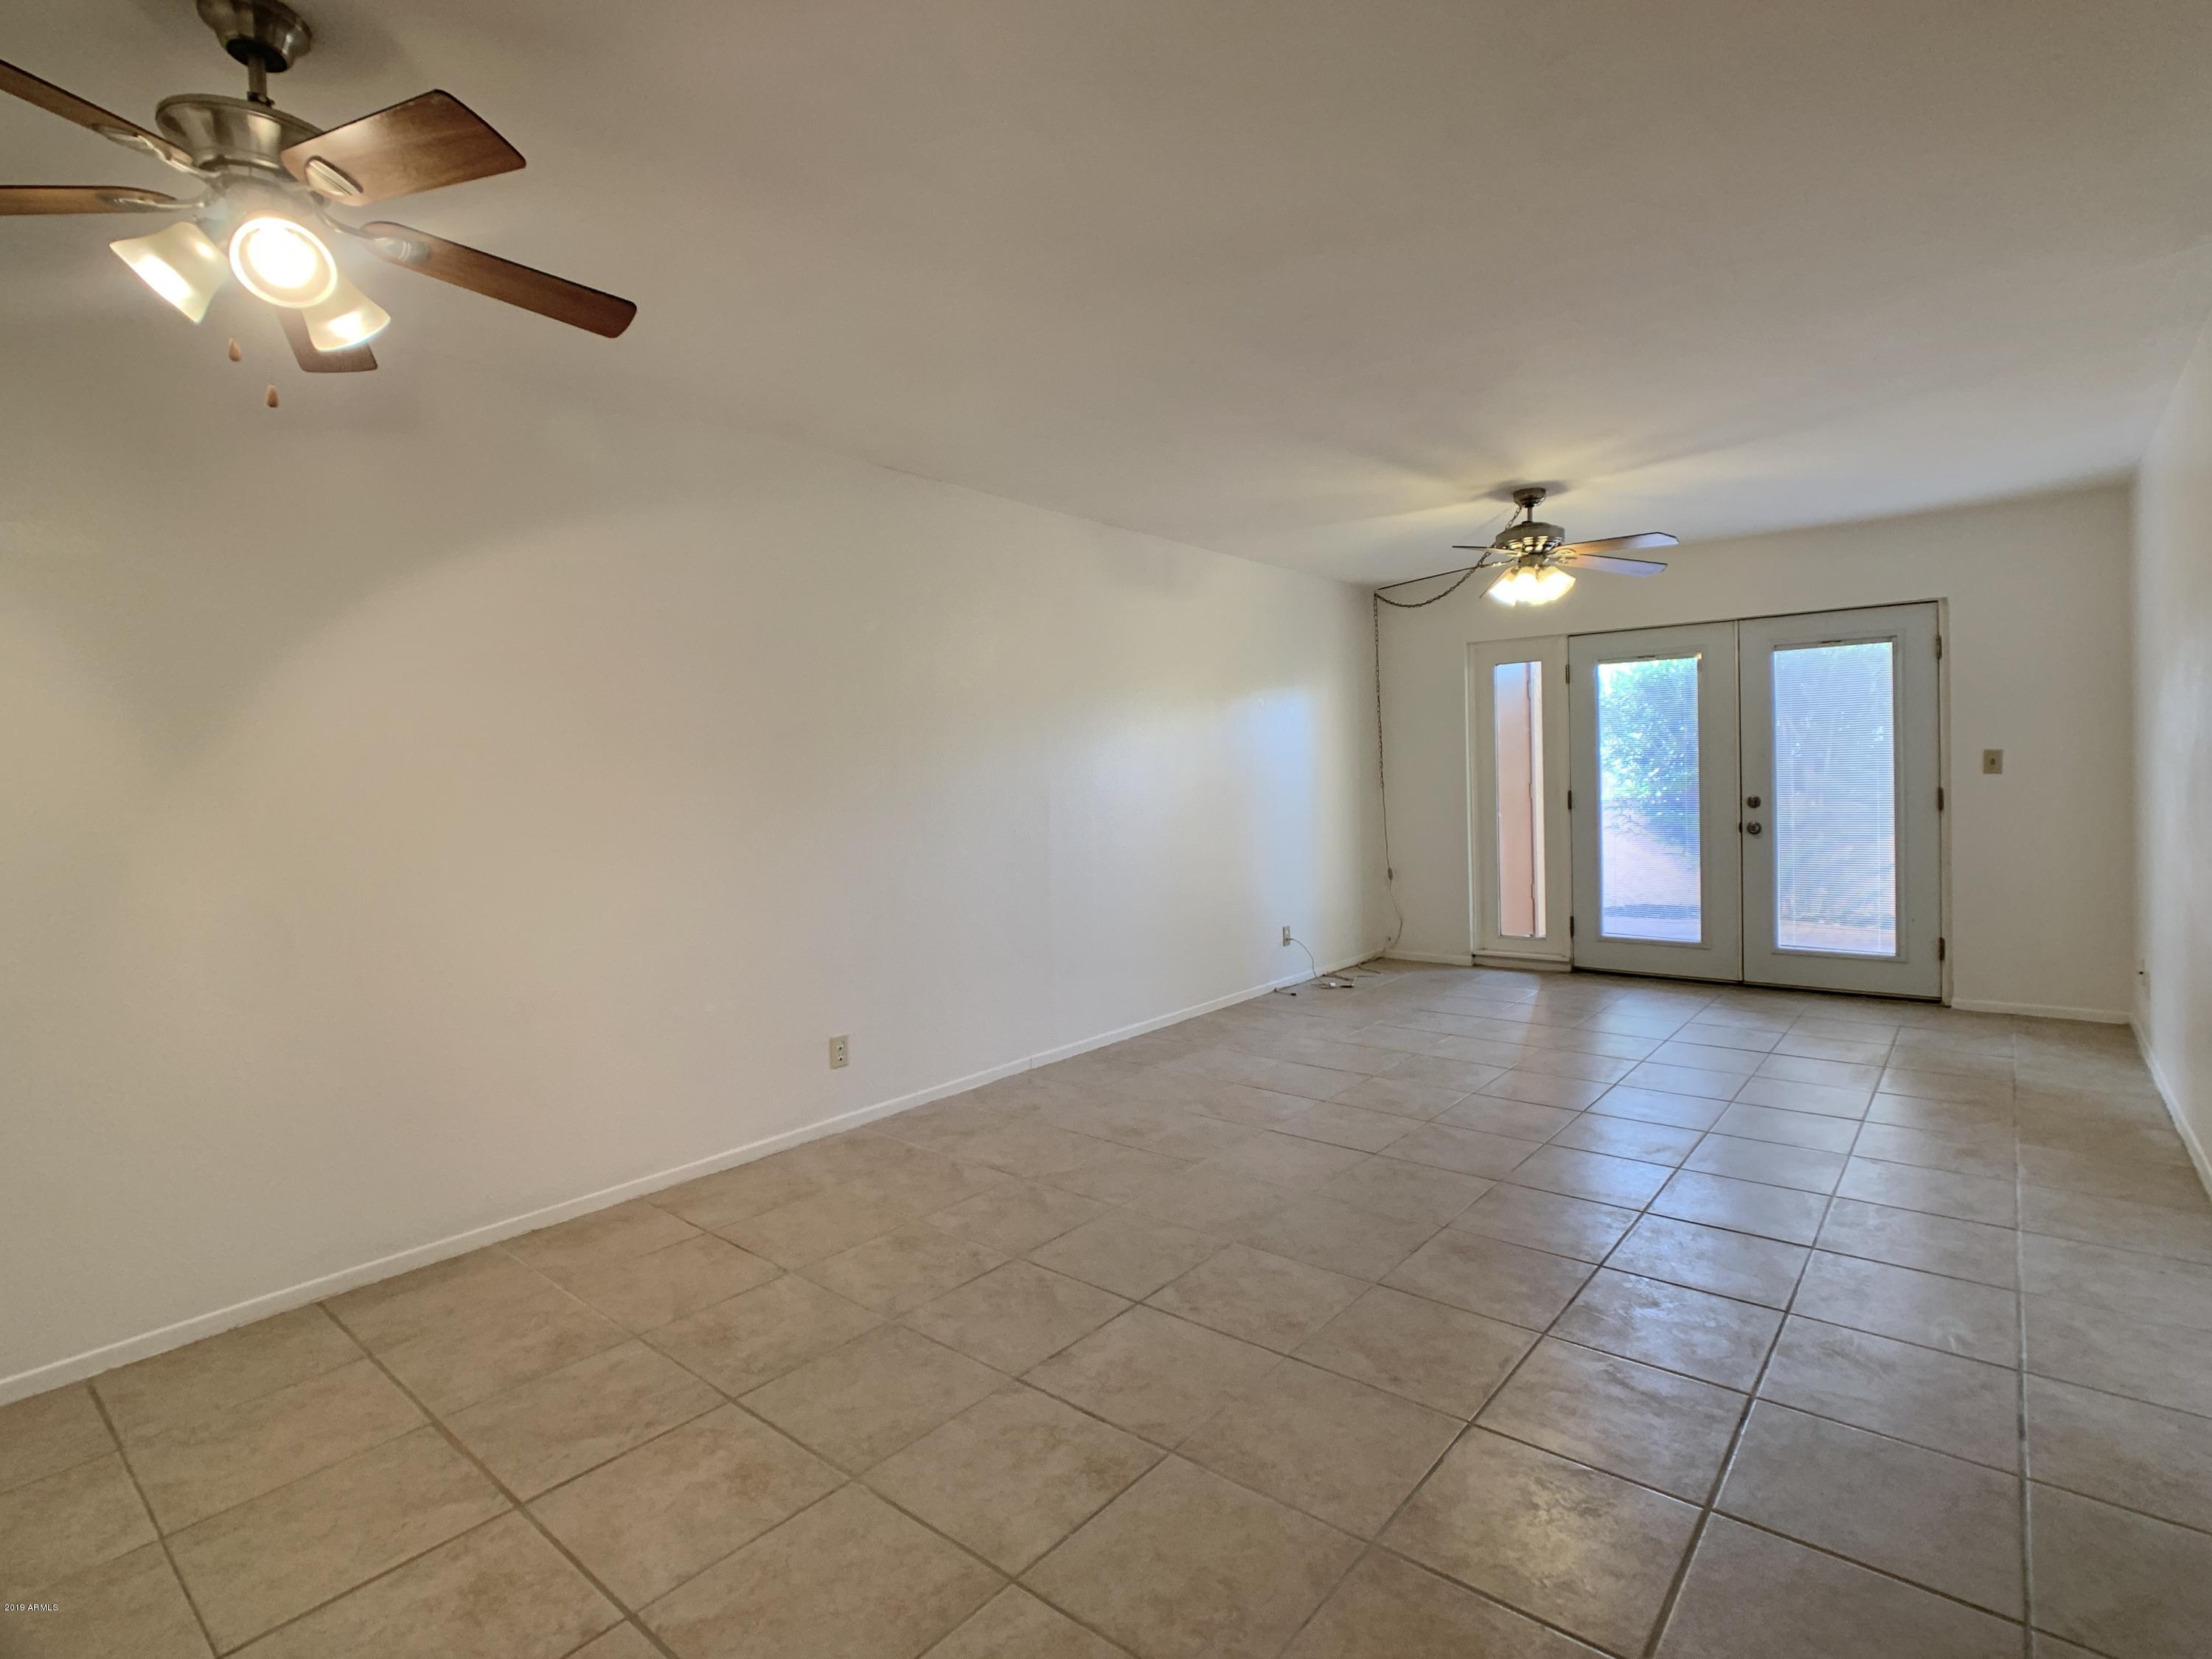 Photo of 540 N MAY -- #1124, Mesa, AZ 85201